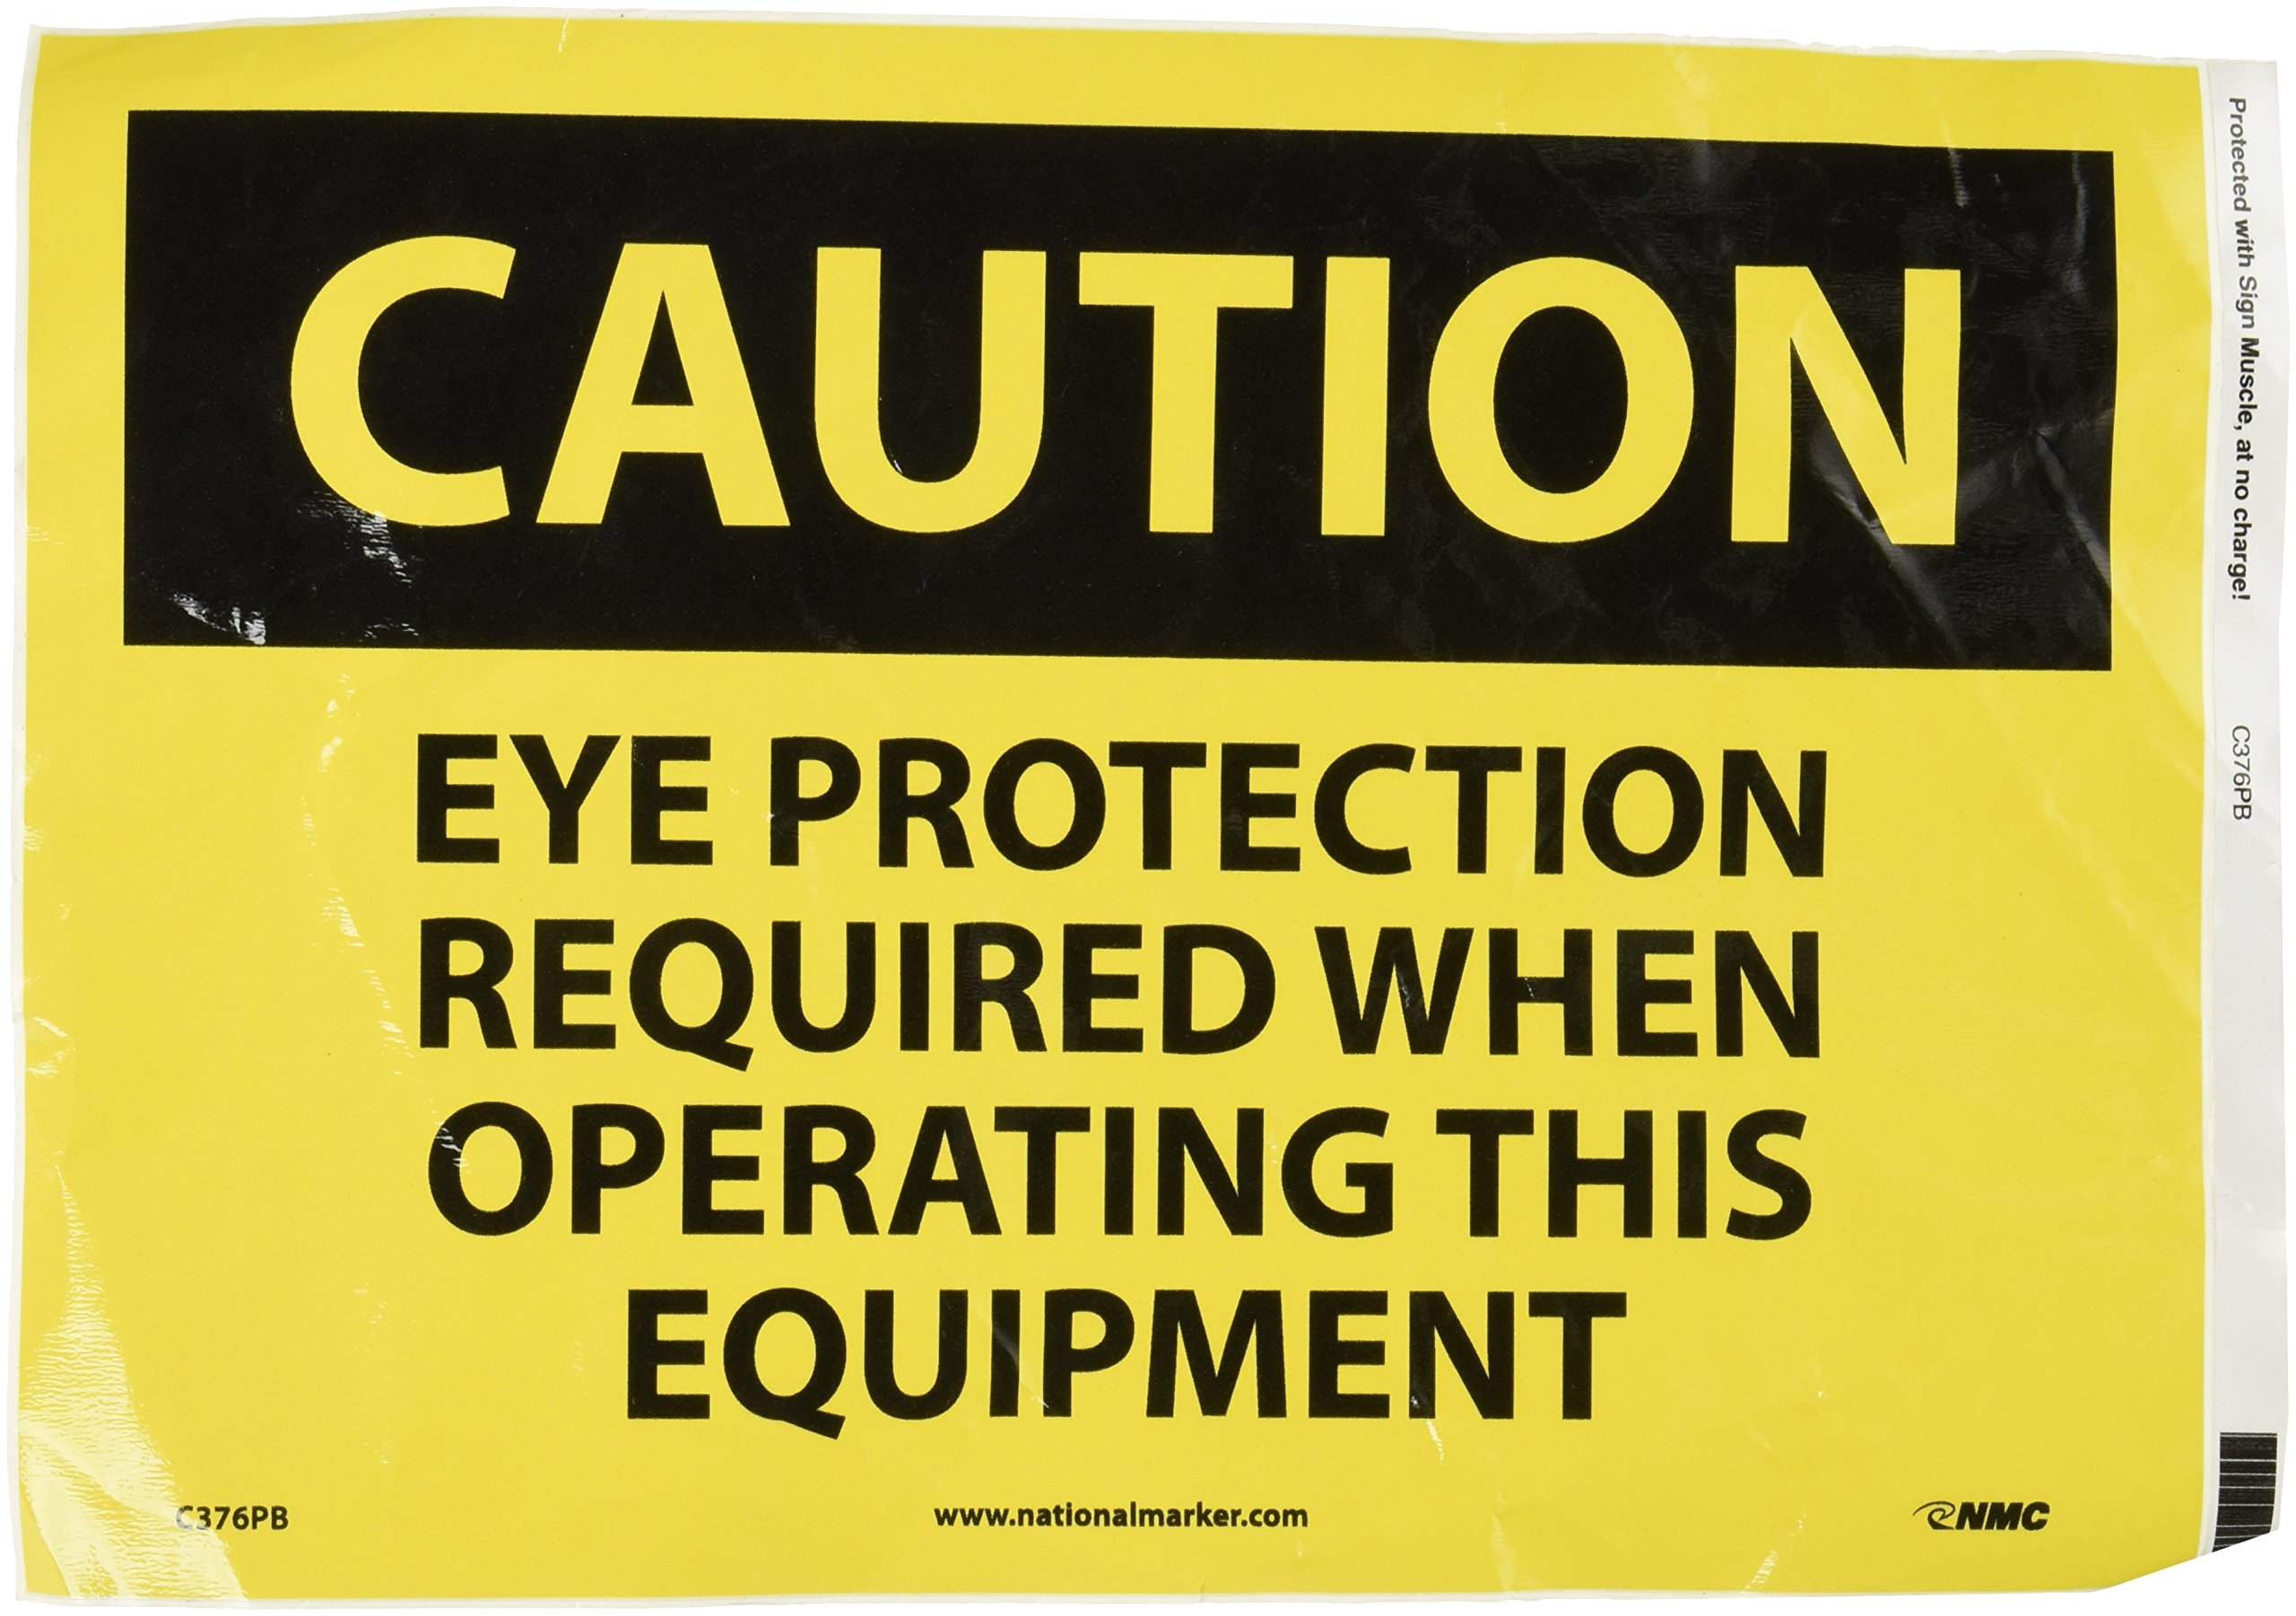 "NMC C376PB OSHA Sign, Legend ""CAUTION - EYE PROTECTION REQUIRED WHEN OPERATING THIS EQUIPMENT"", 14"" Length x 10"" Height, Pressure Sensitive Adhesive Vinyl, Black on Yellow"